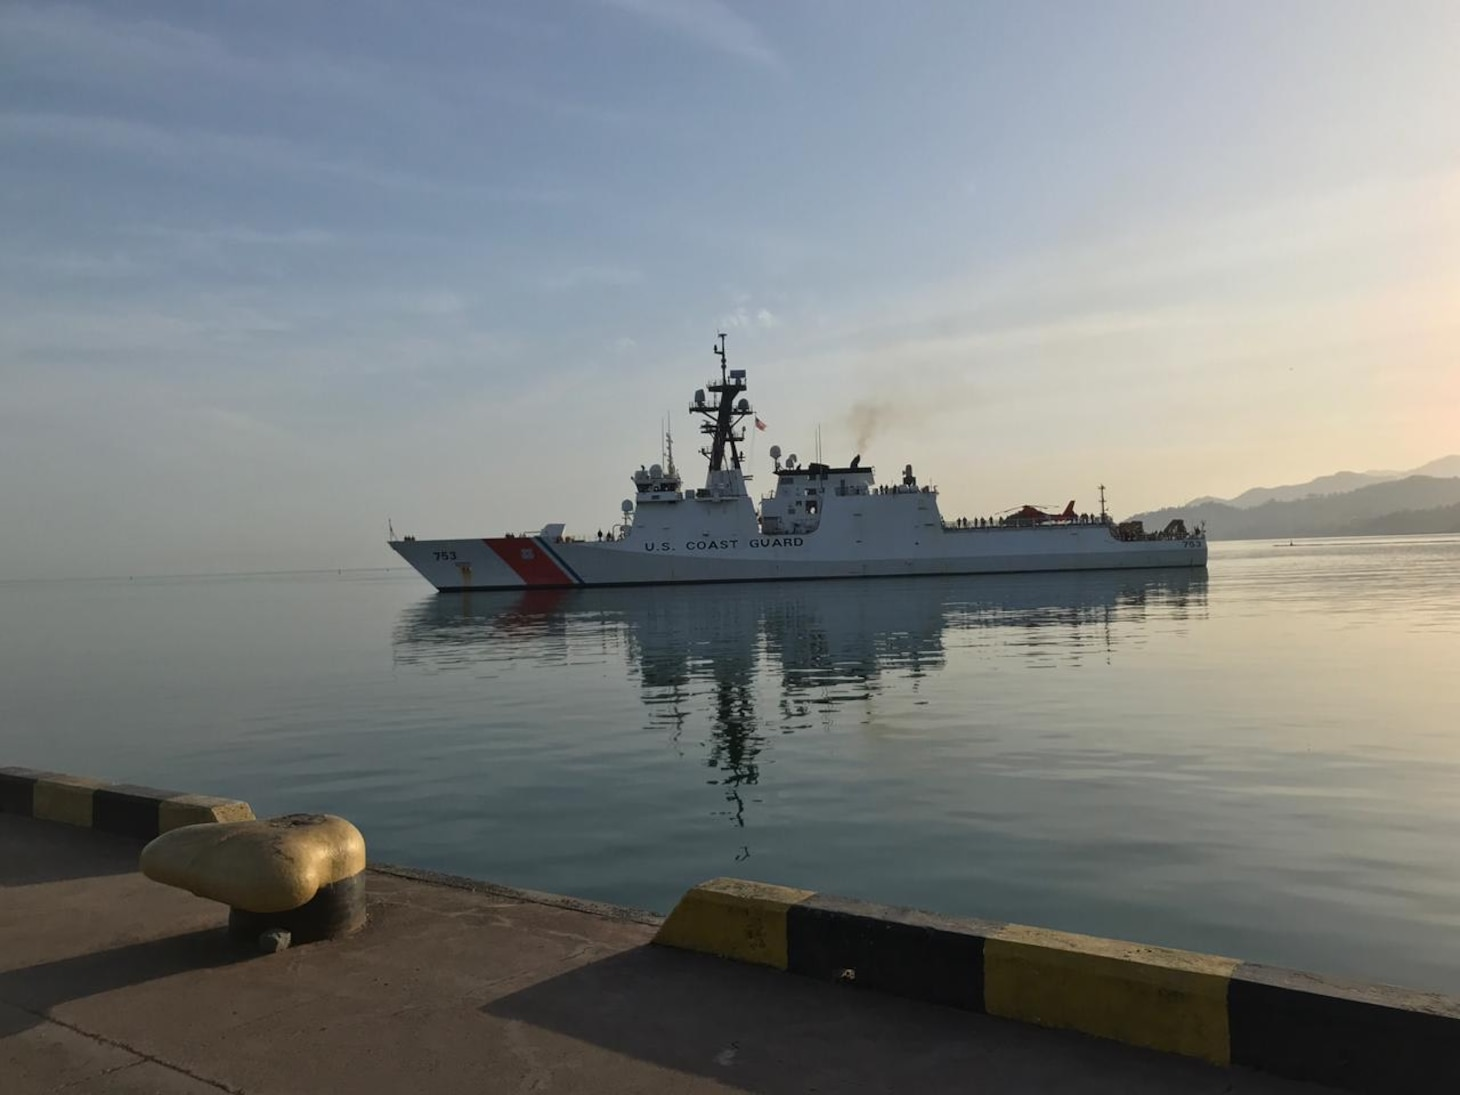 The Legend-class national security cutter USCGC Hamilton (WMSL 753) pulls into Batumi, Georgia after completing interoperability exercises and drills with the Georgian Coast Guard, May 4, 2021.